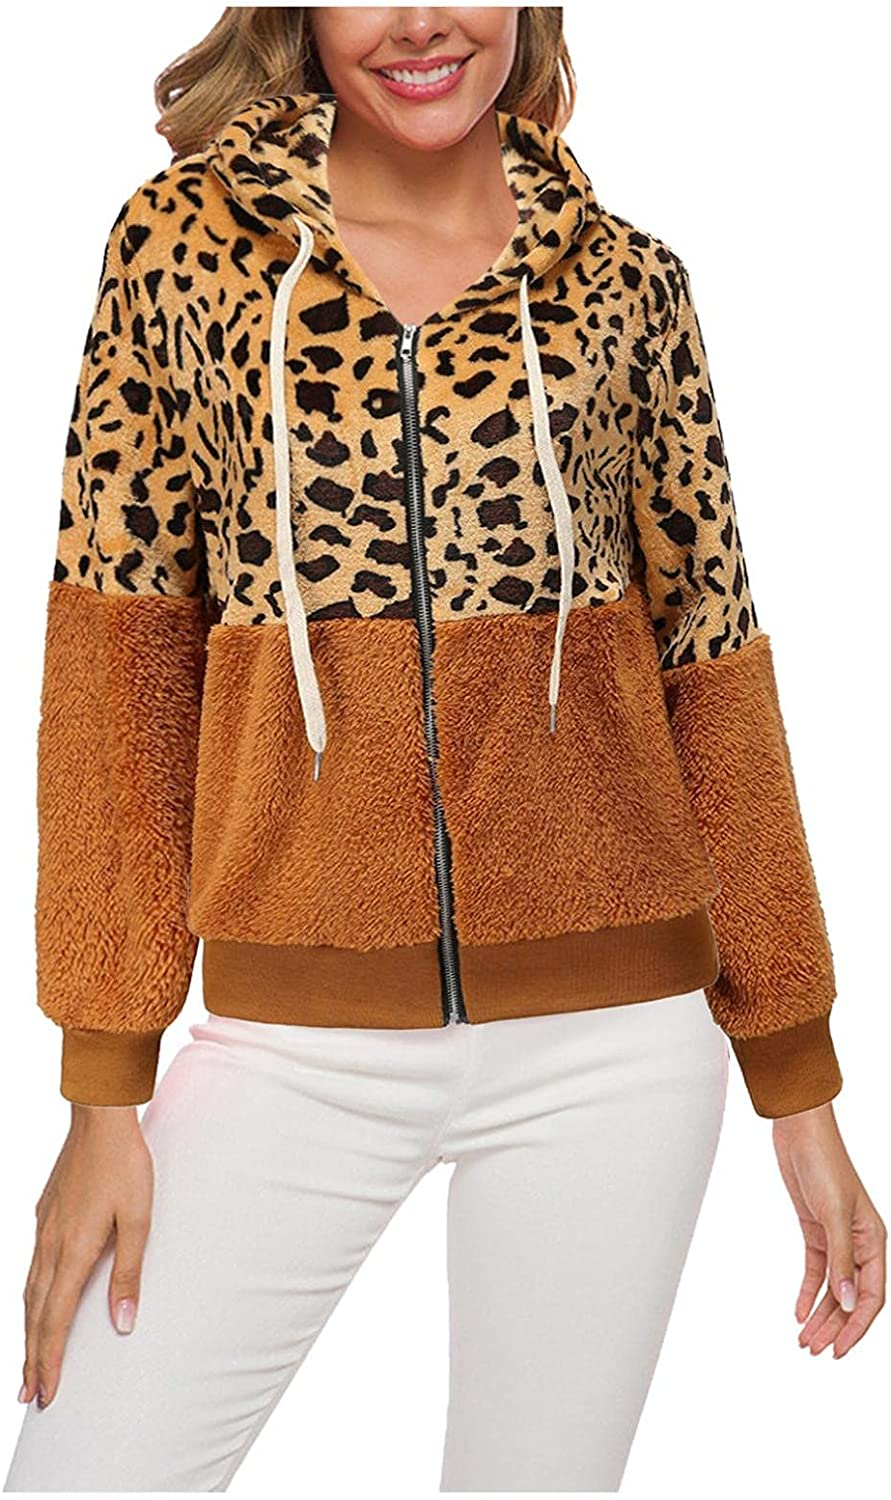 FGDJEE Cardigan Sweaters for Women Hooded Drawstring Sweatshirts Winter Thick Wool Leopard Printed Sweater with Pockets